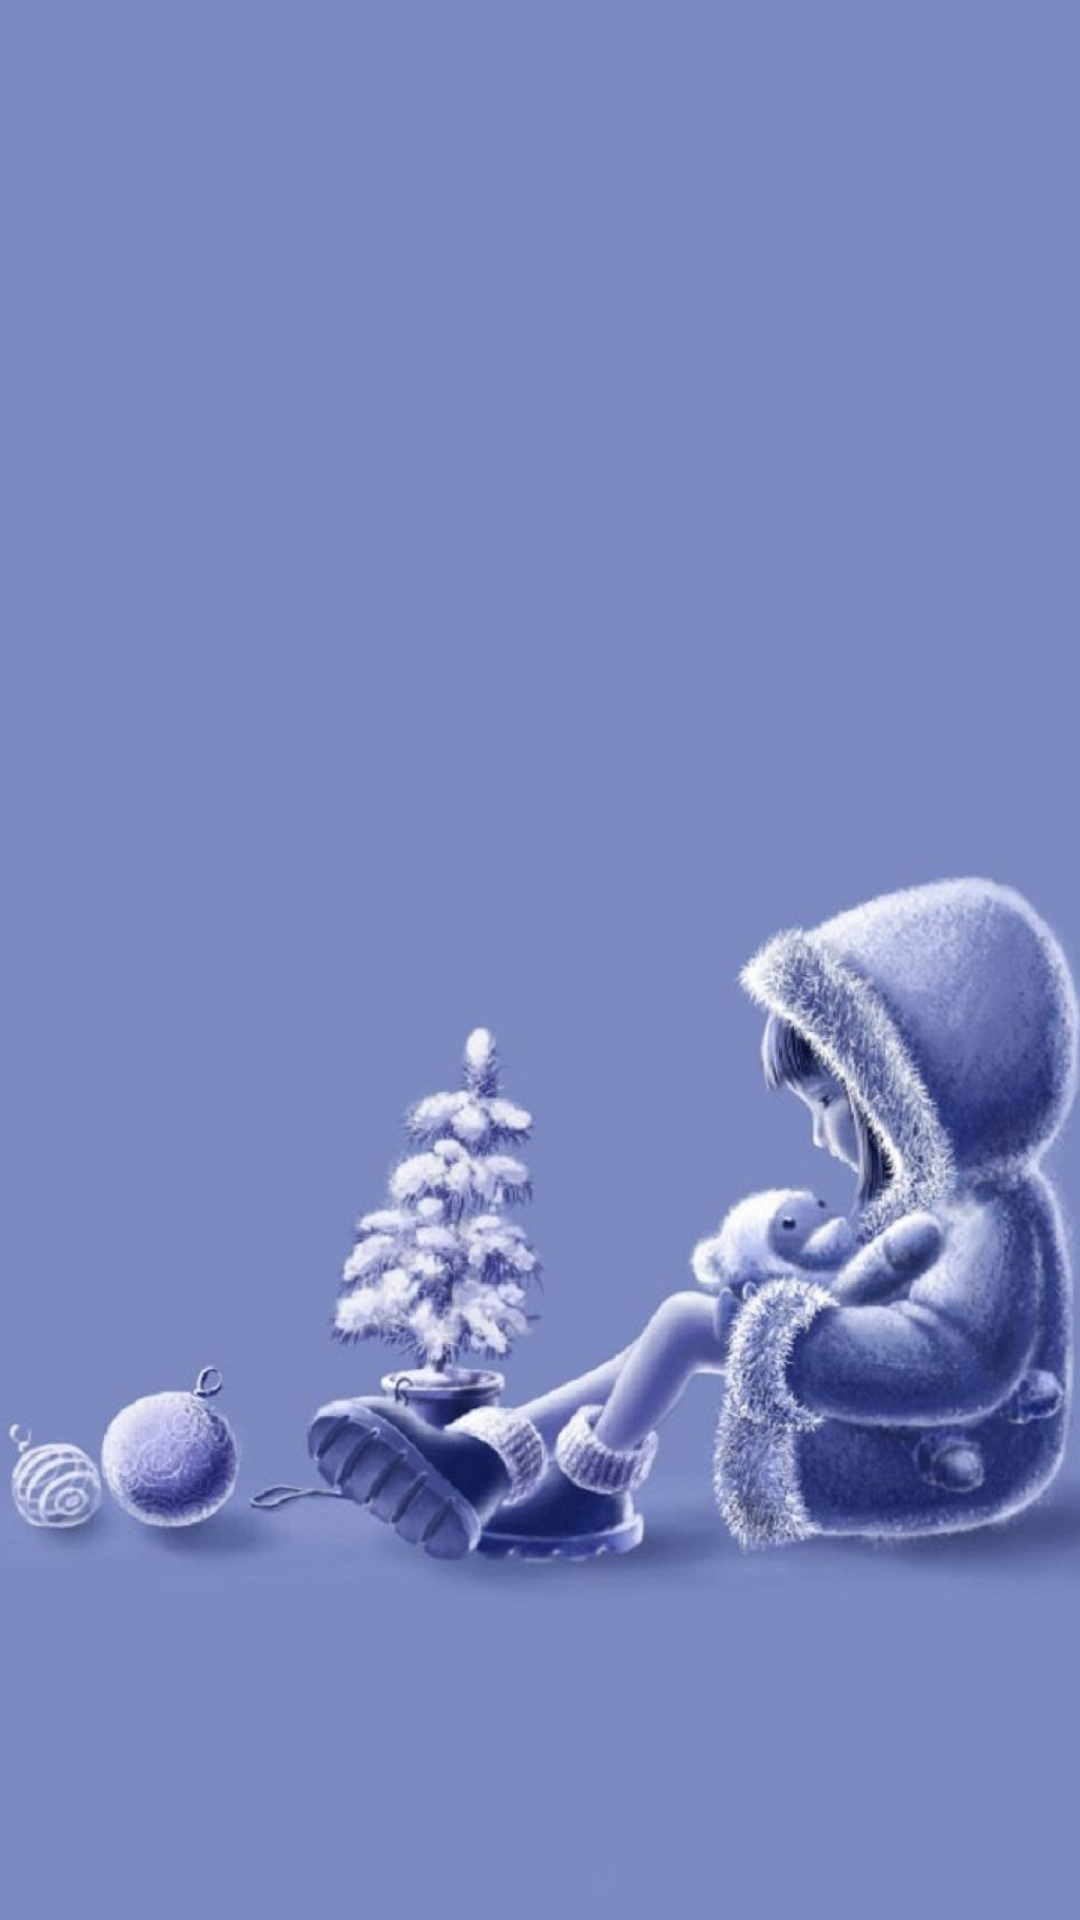 Wallpapers for galaxy christmas wallpaper - Galaxy christmas wallpaper ...